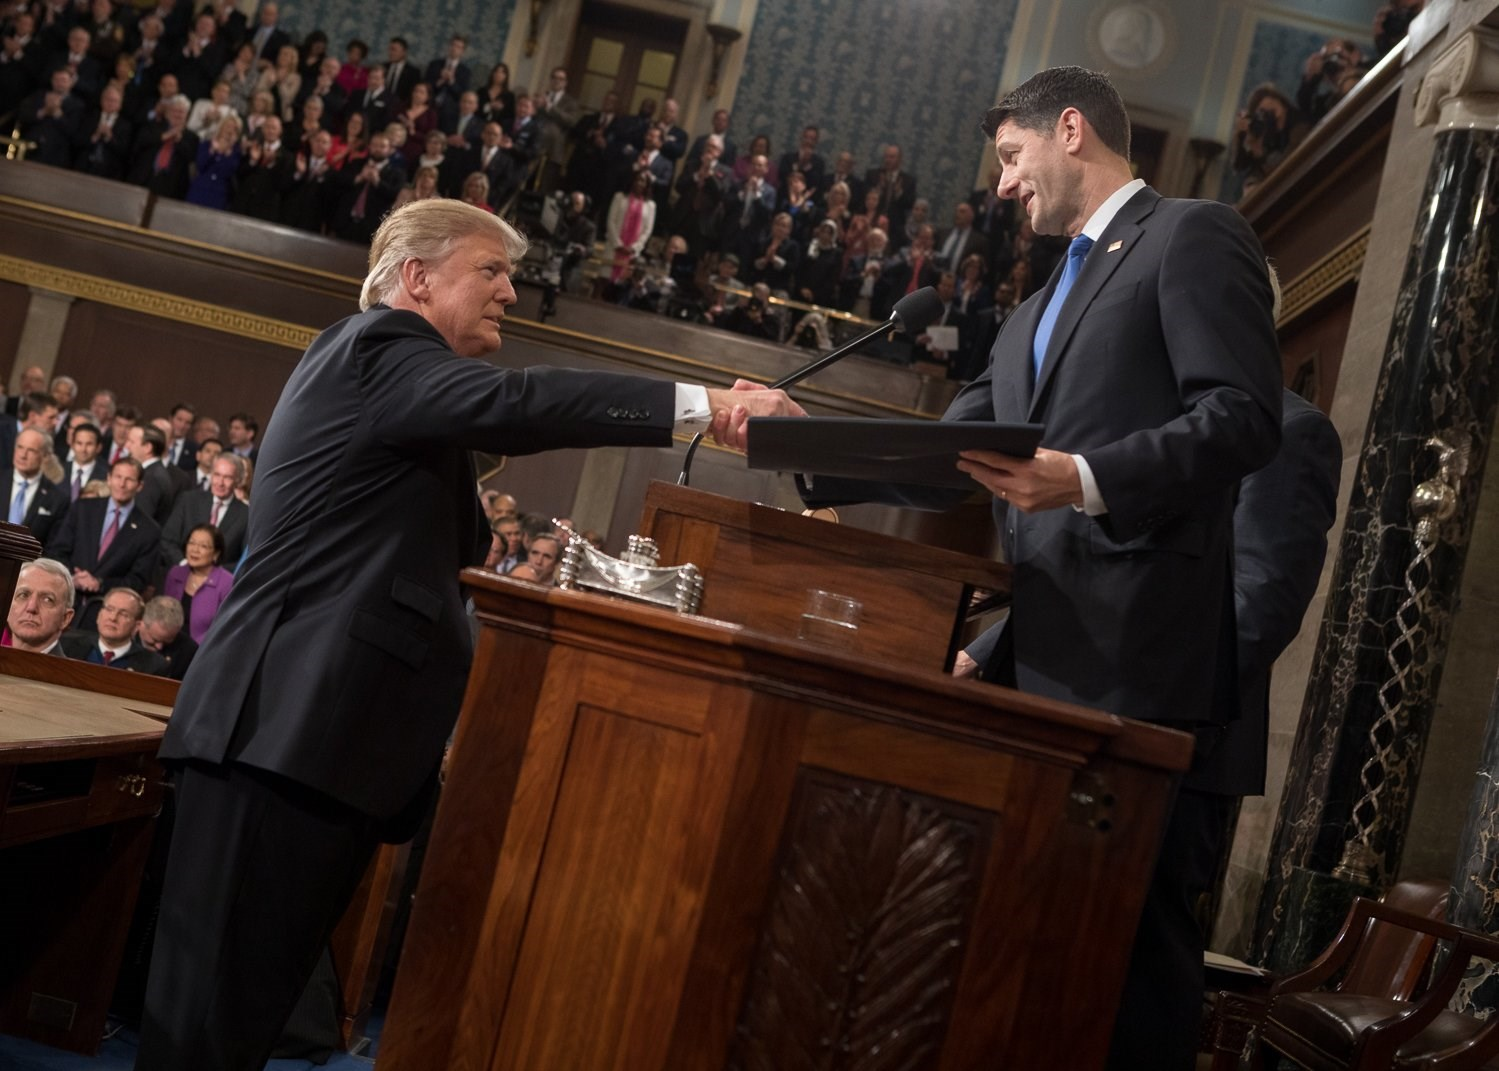 """By Office of the Speaker (https://twitter.com/SpeakerRyan) [Public domain], <a href=""""https://commons.wikimedia.org/wiki/File%3ATrump_shaking_hands_with_Paul_Ryan.jpg"""">via Wikimedia Commons</a>"""